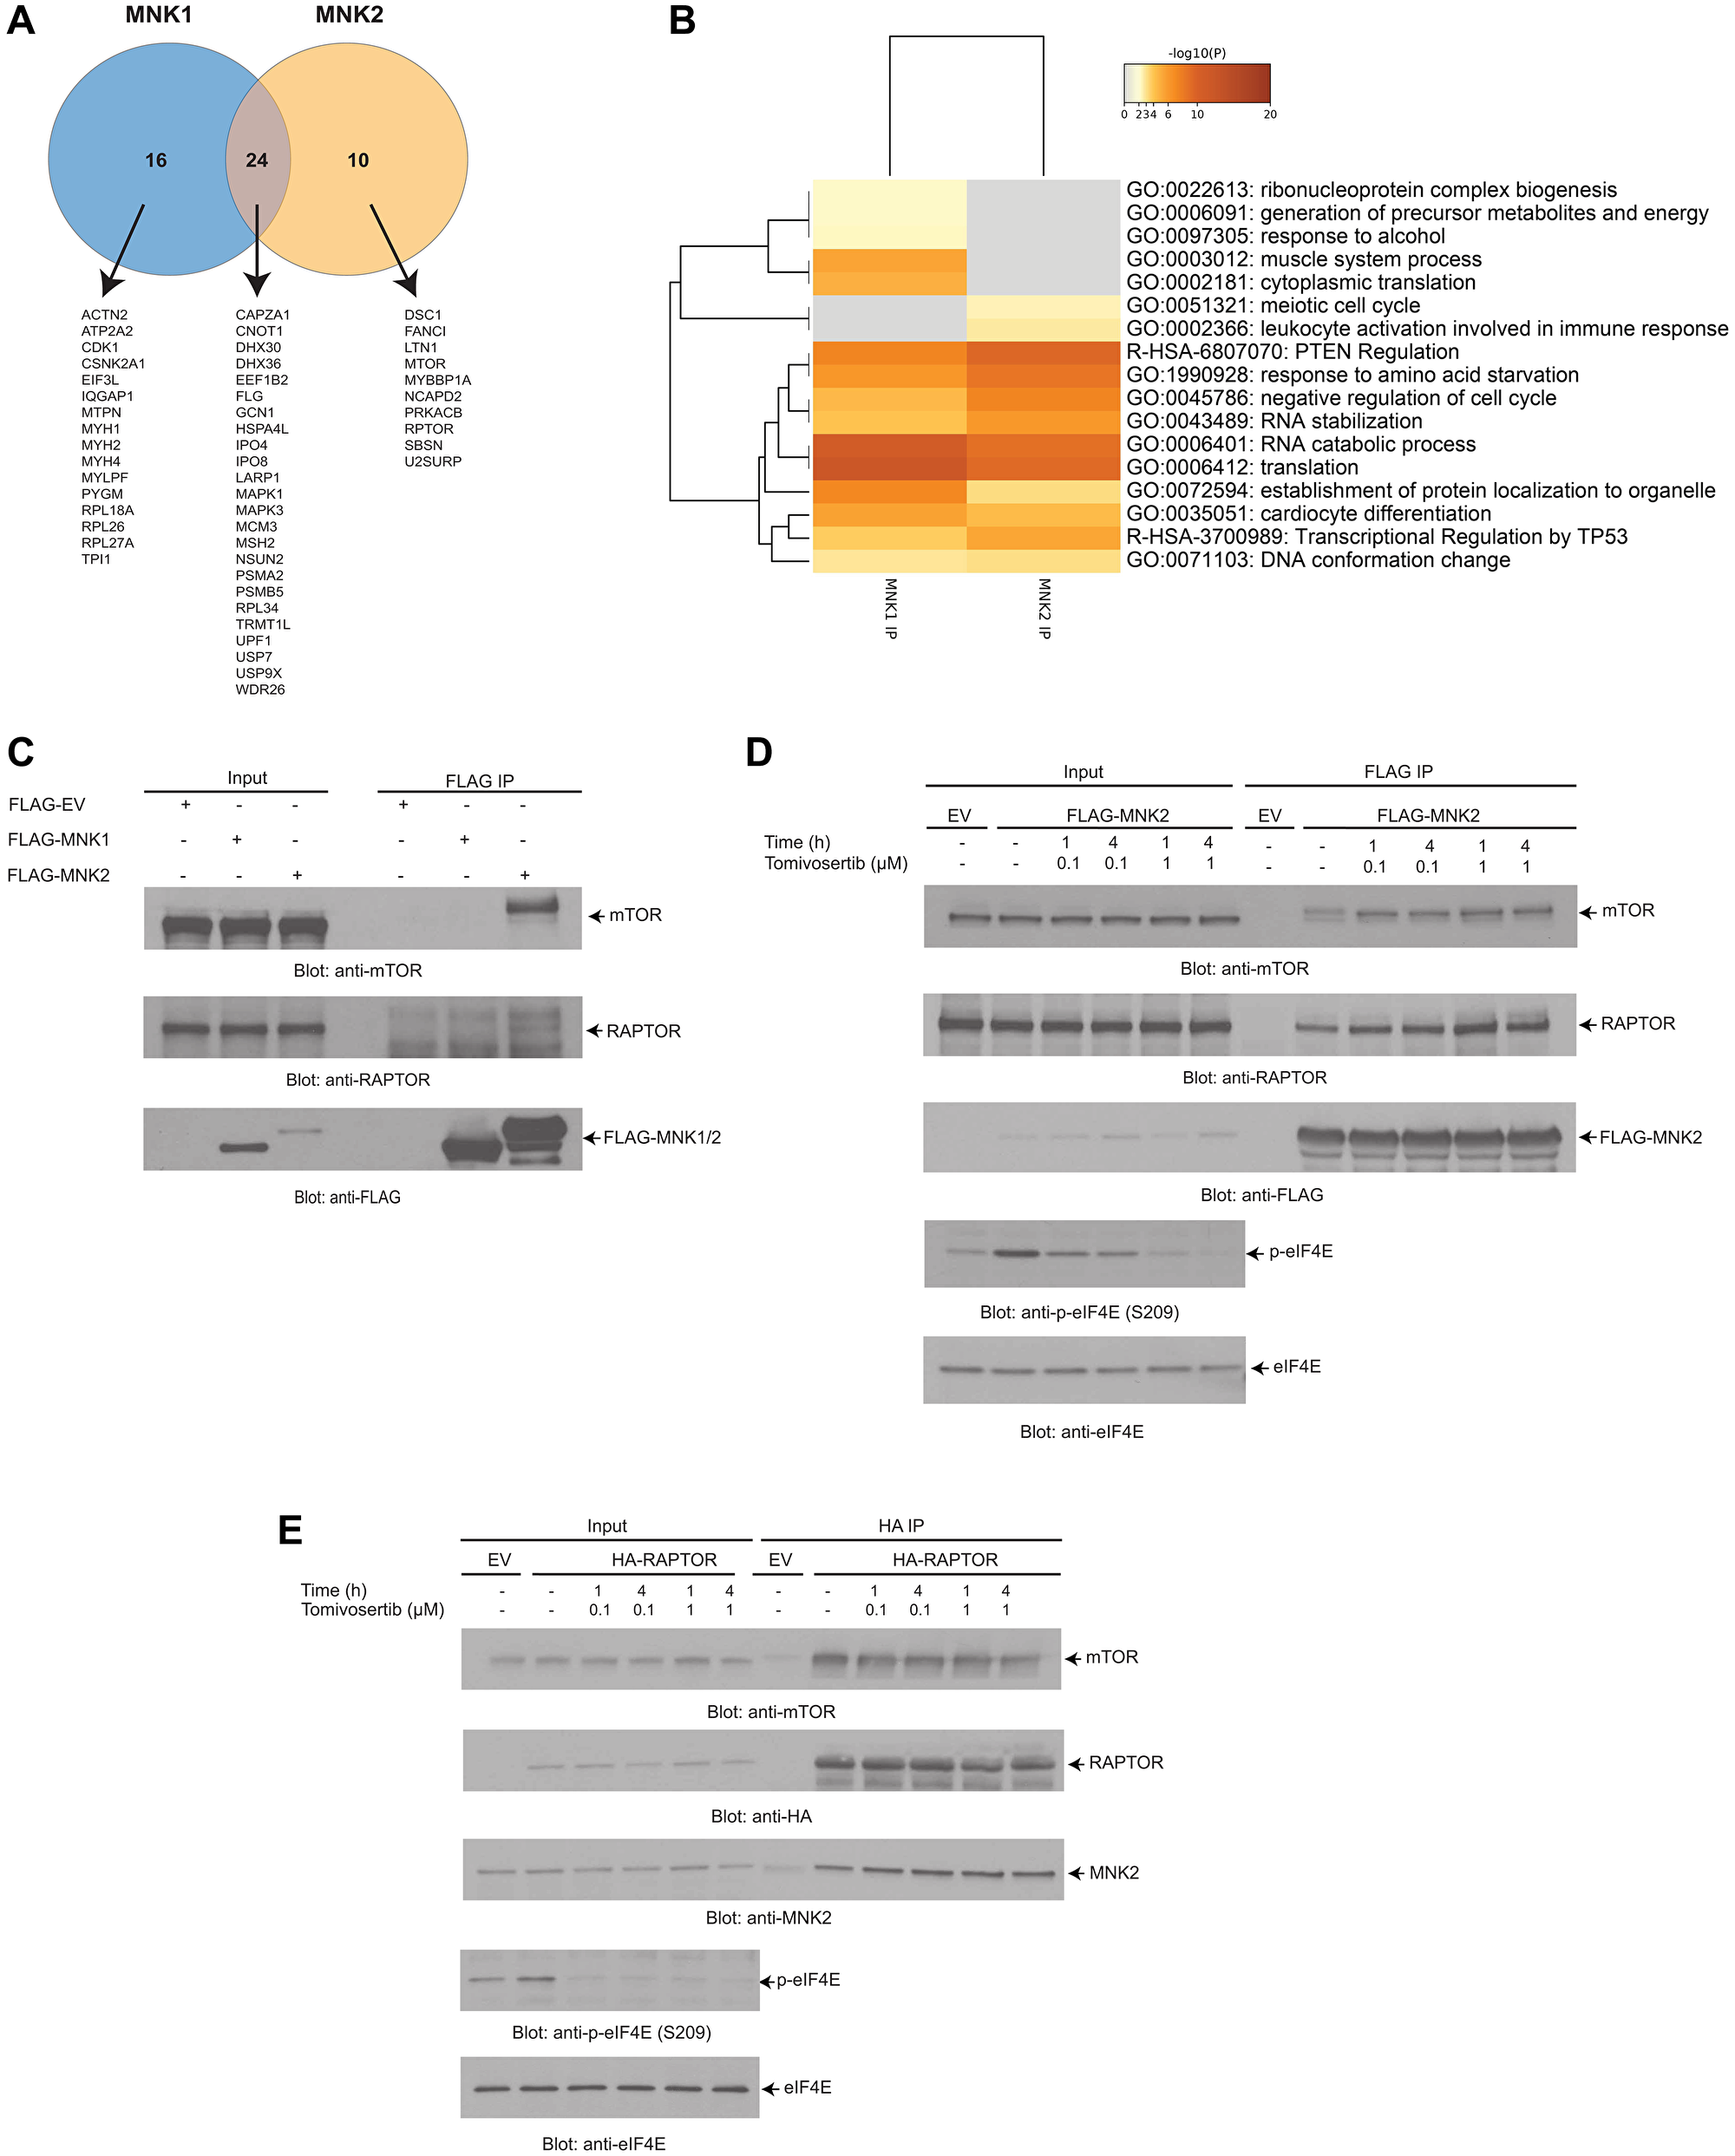 LC-MS/MS analysis identifies putative MNK1/2 targets and interactors.